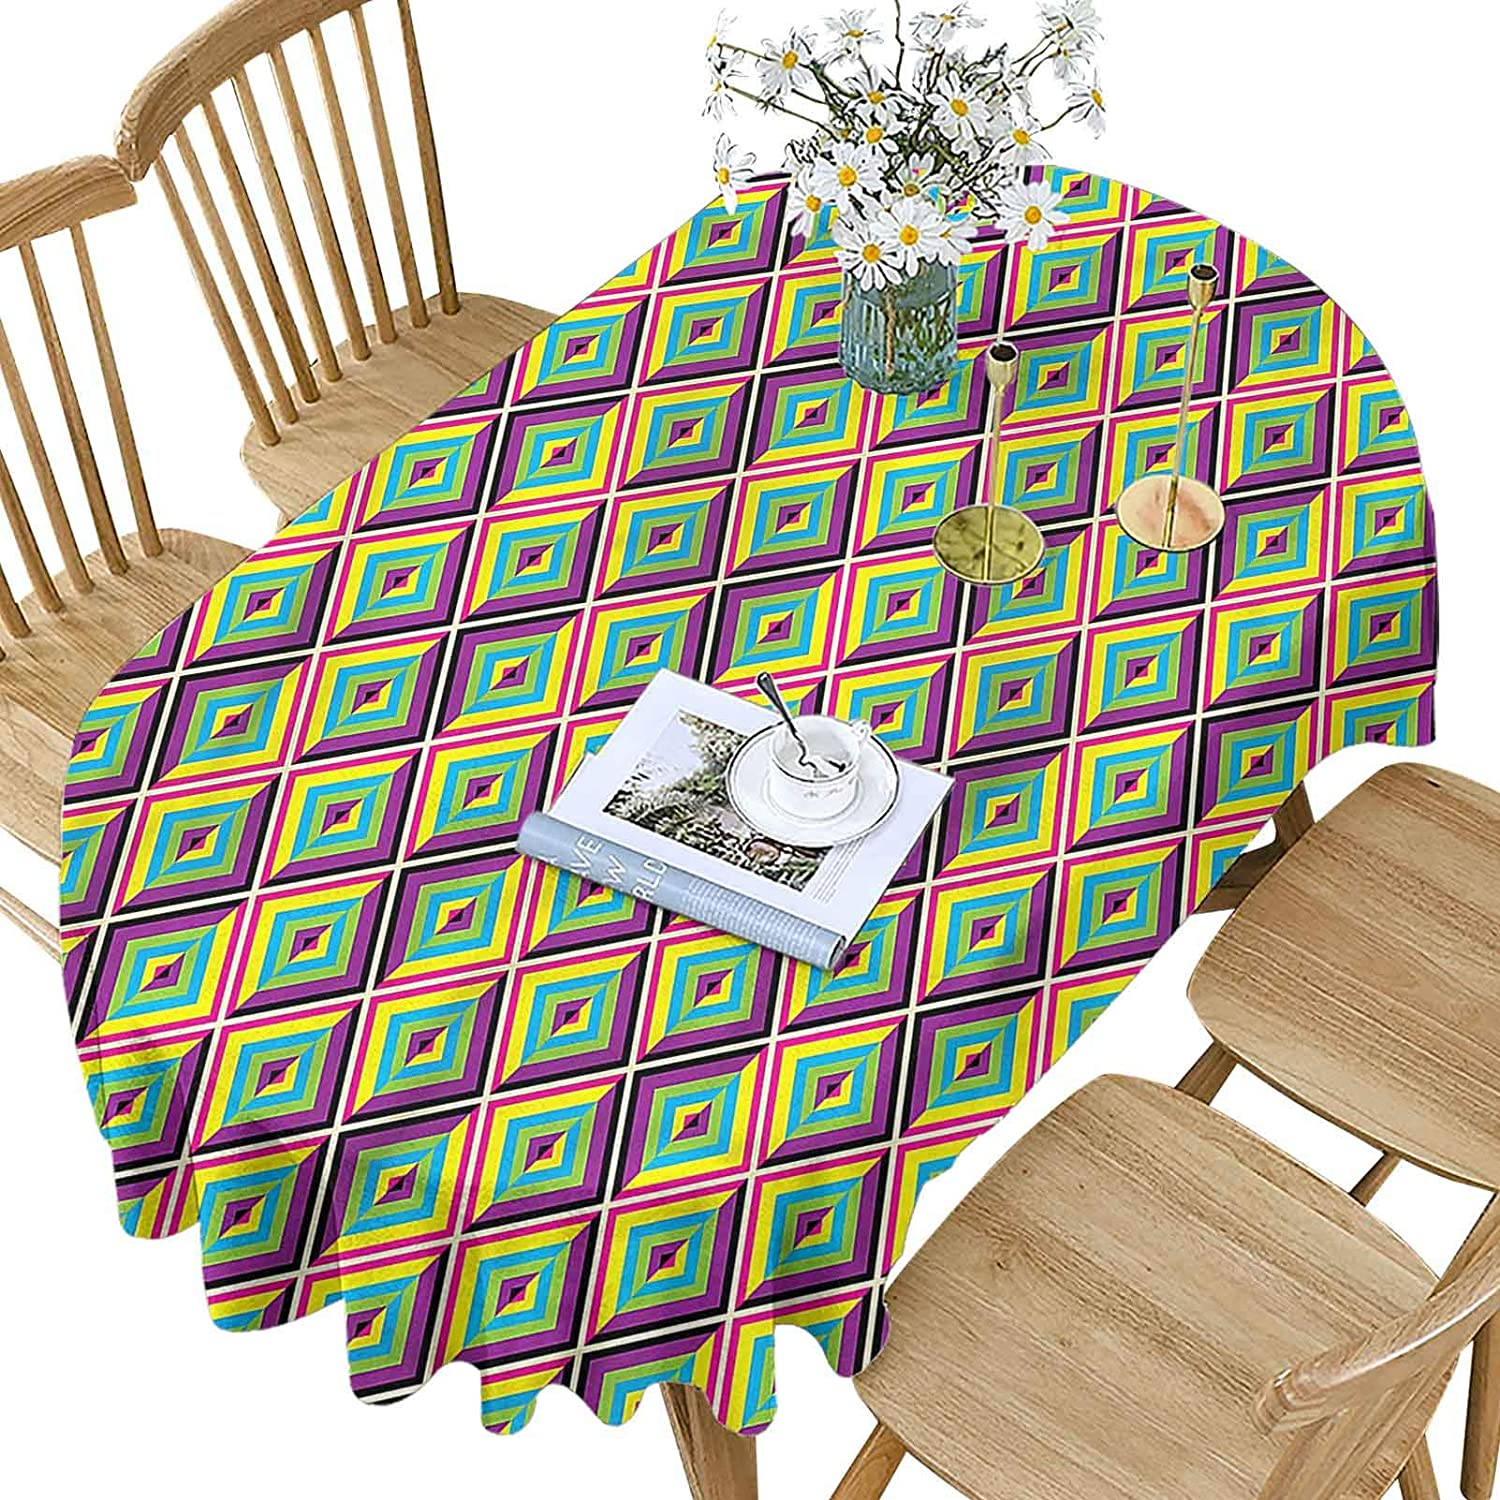 Hiiiman Colorful Manufacturer direct delivery Polyester Oval P In stock Tablecloth Rhombus Composition